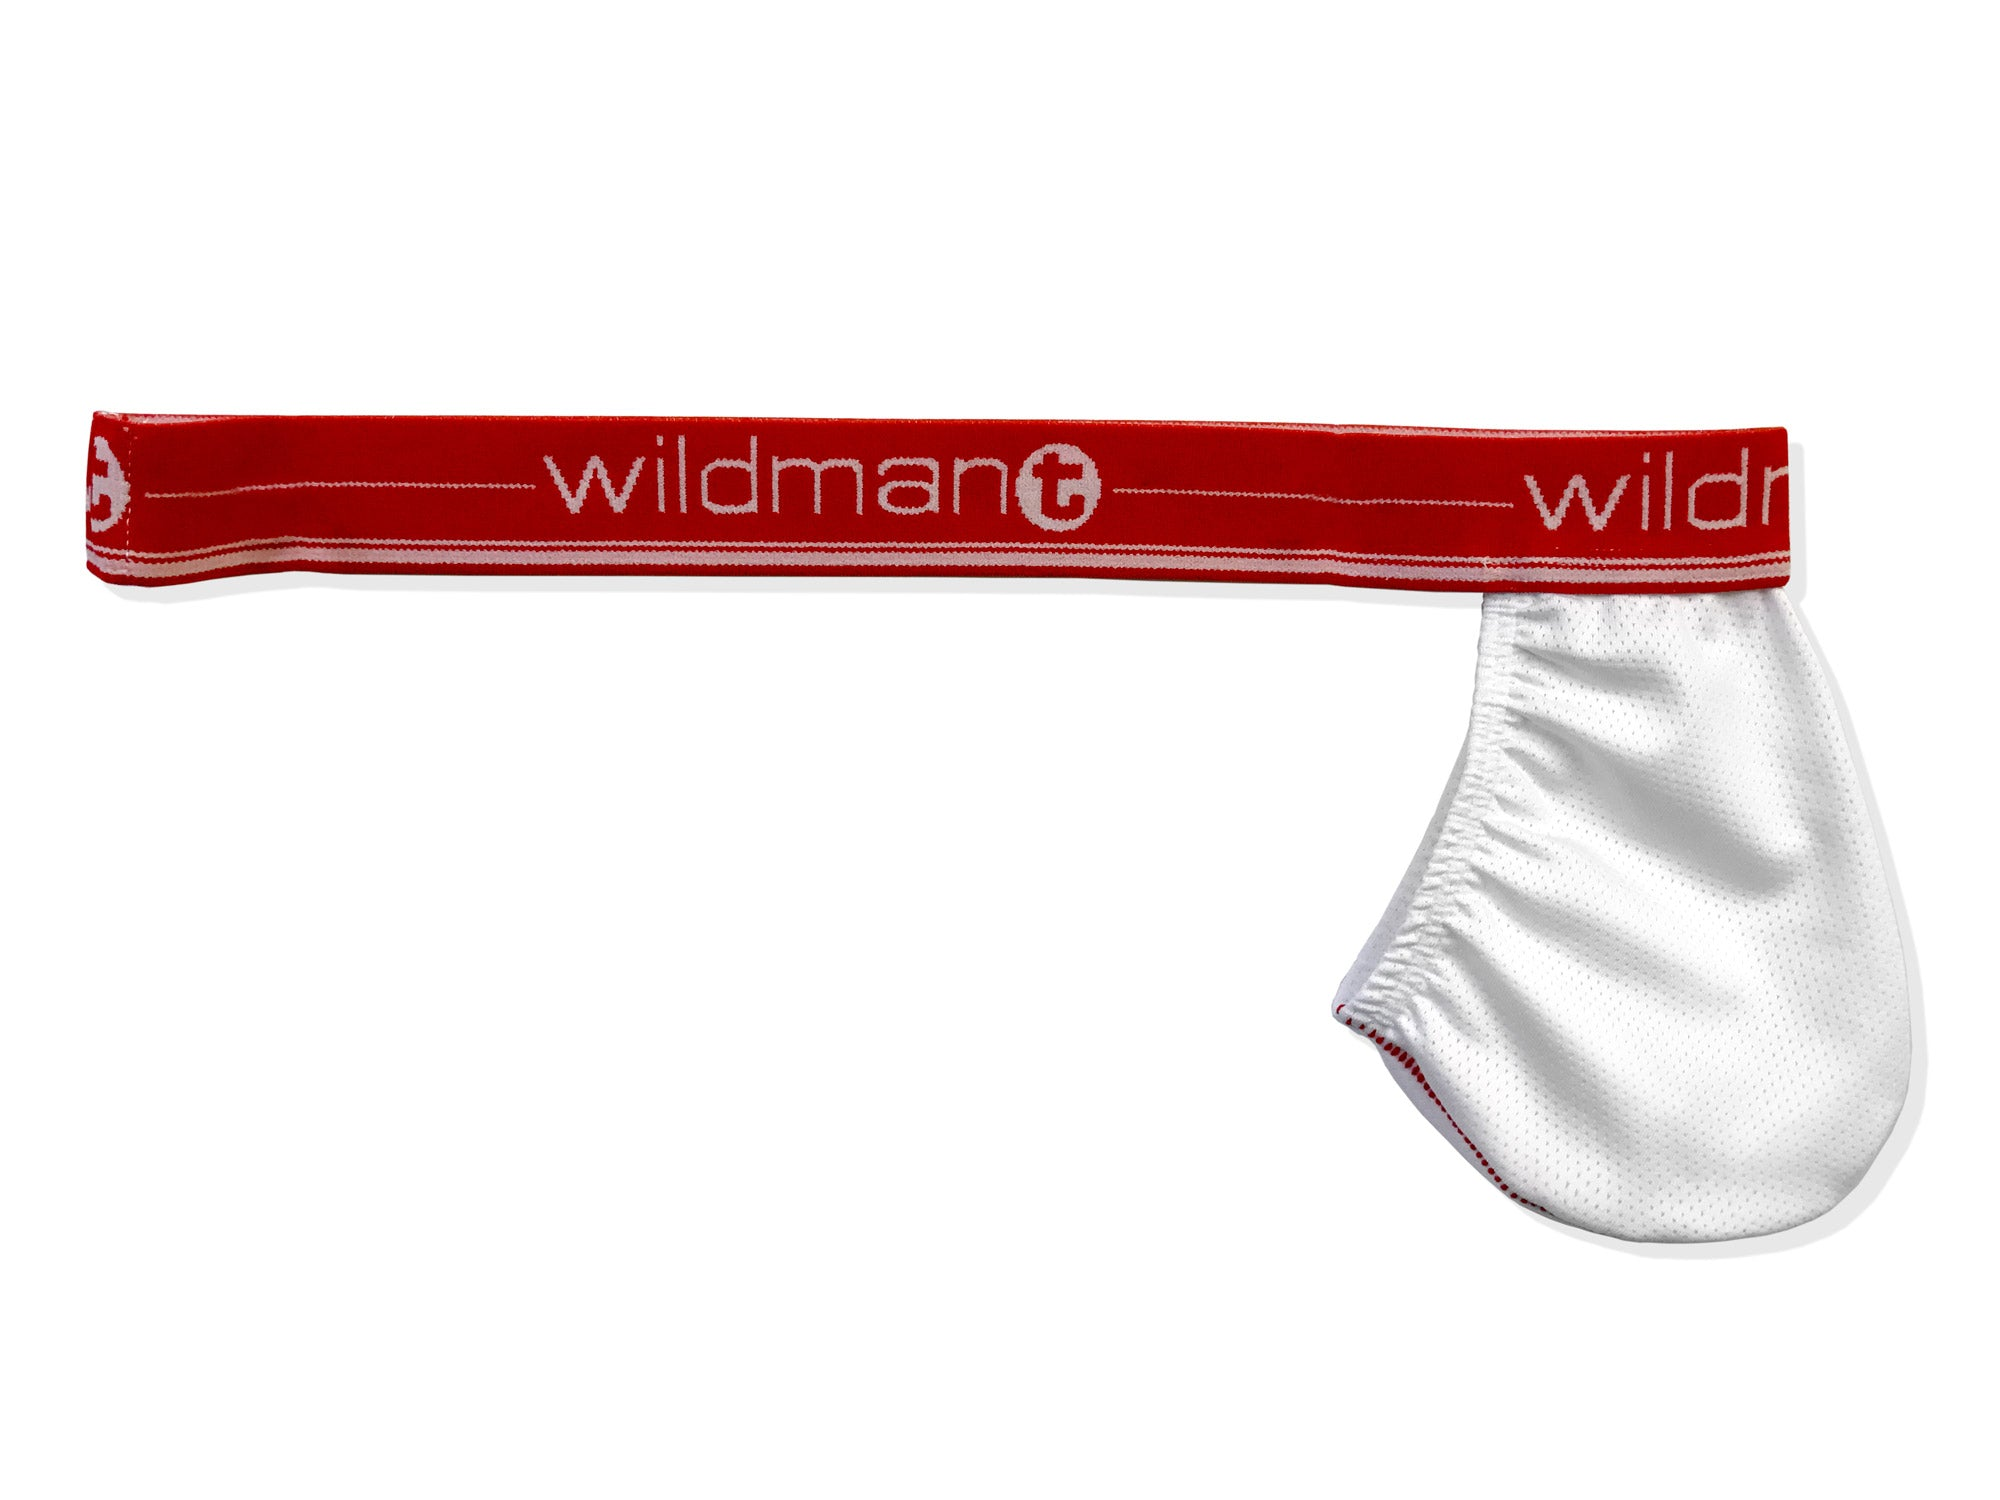 Big Boy Strapless Pouch White Mesh w/Red Band - Big Penis Underwear, Wildman T - WildmanT